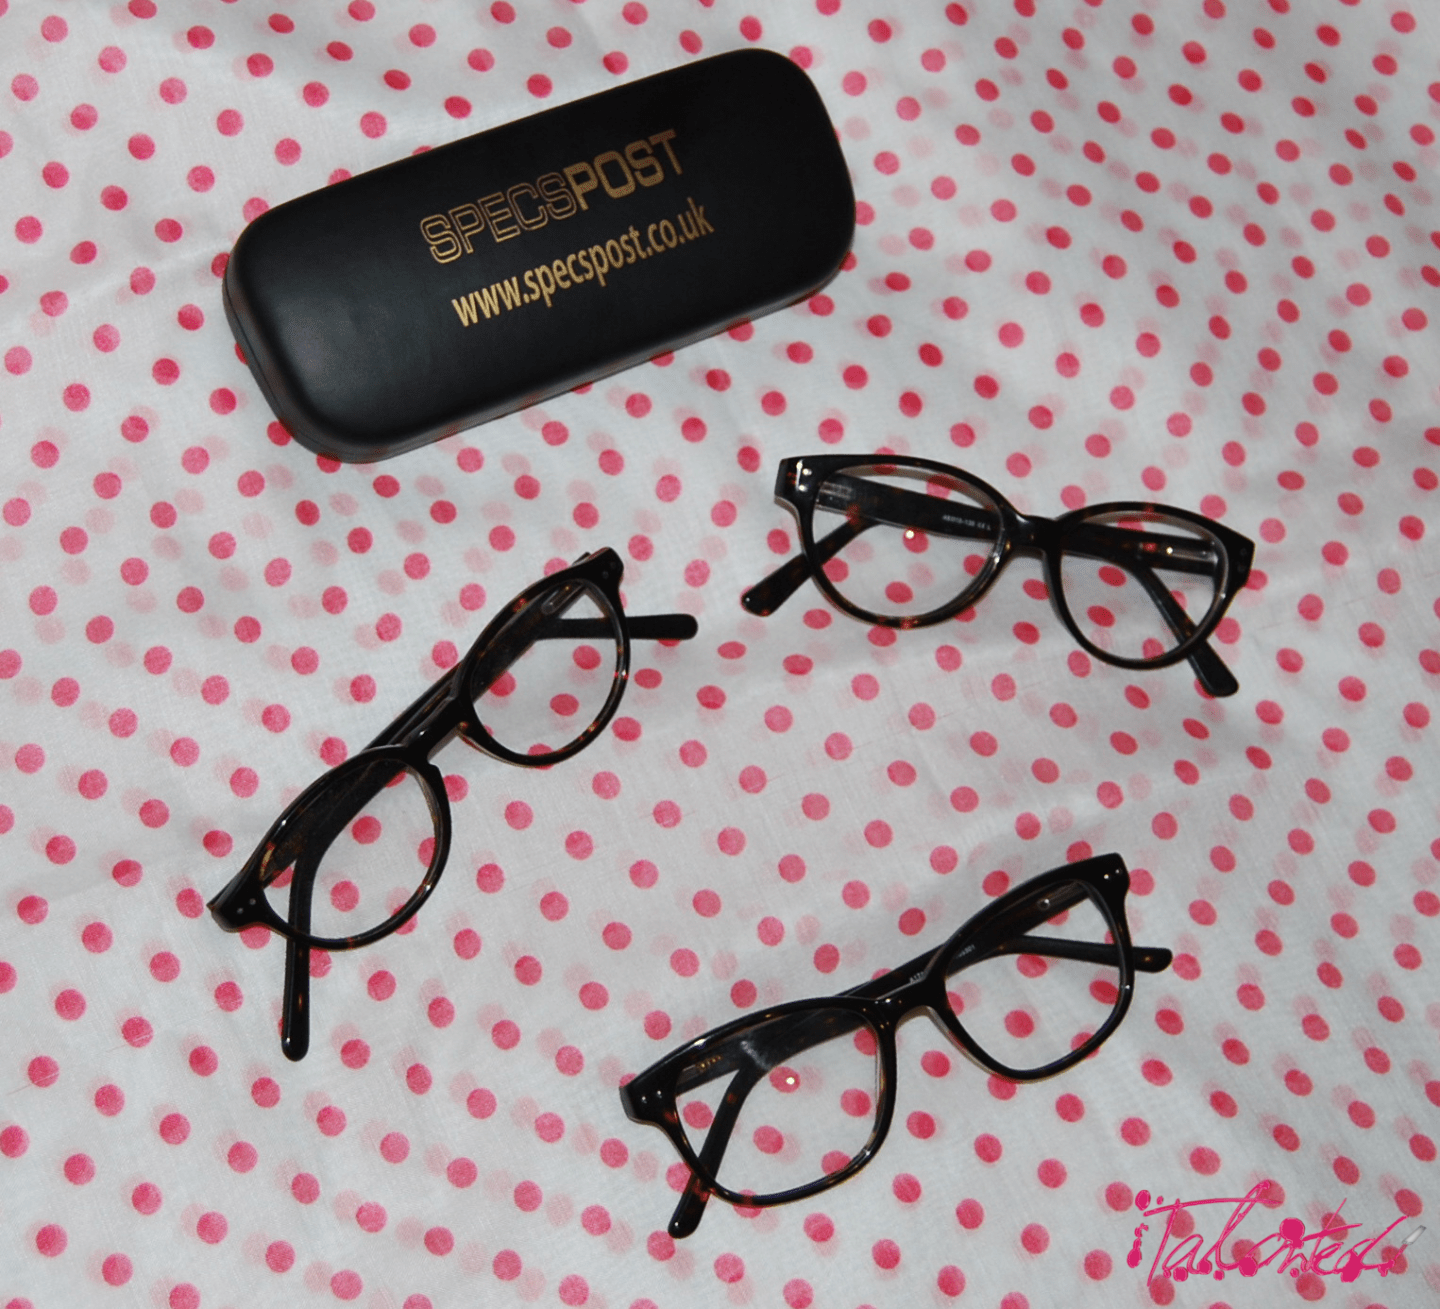 My New Glasses Specspost Review